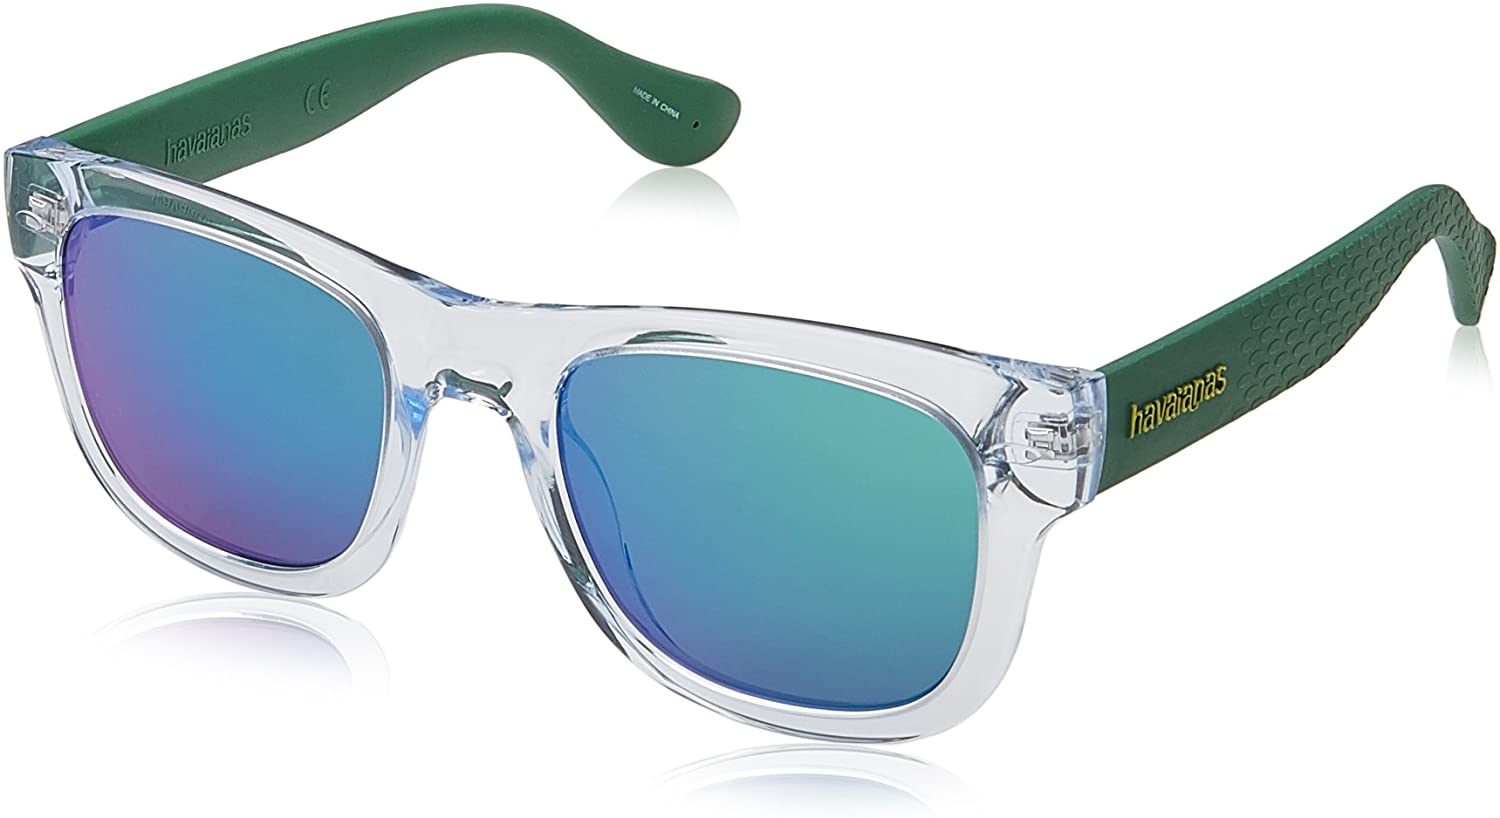 Havaianas Paraty m Square Sunglasses, CRY Green, 50 mm